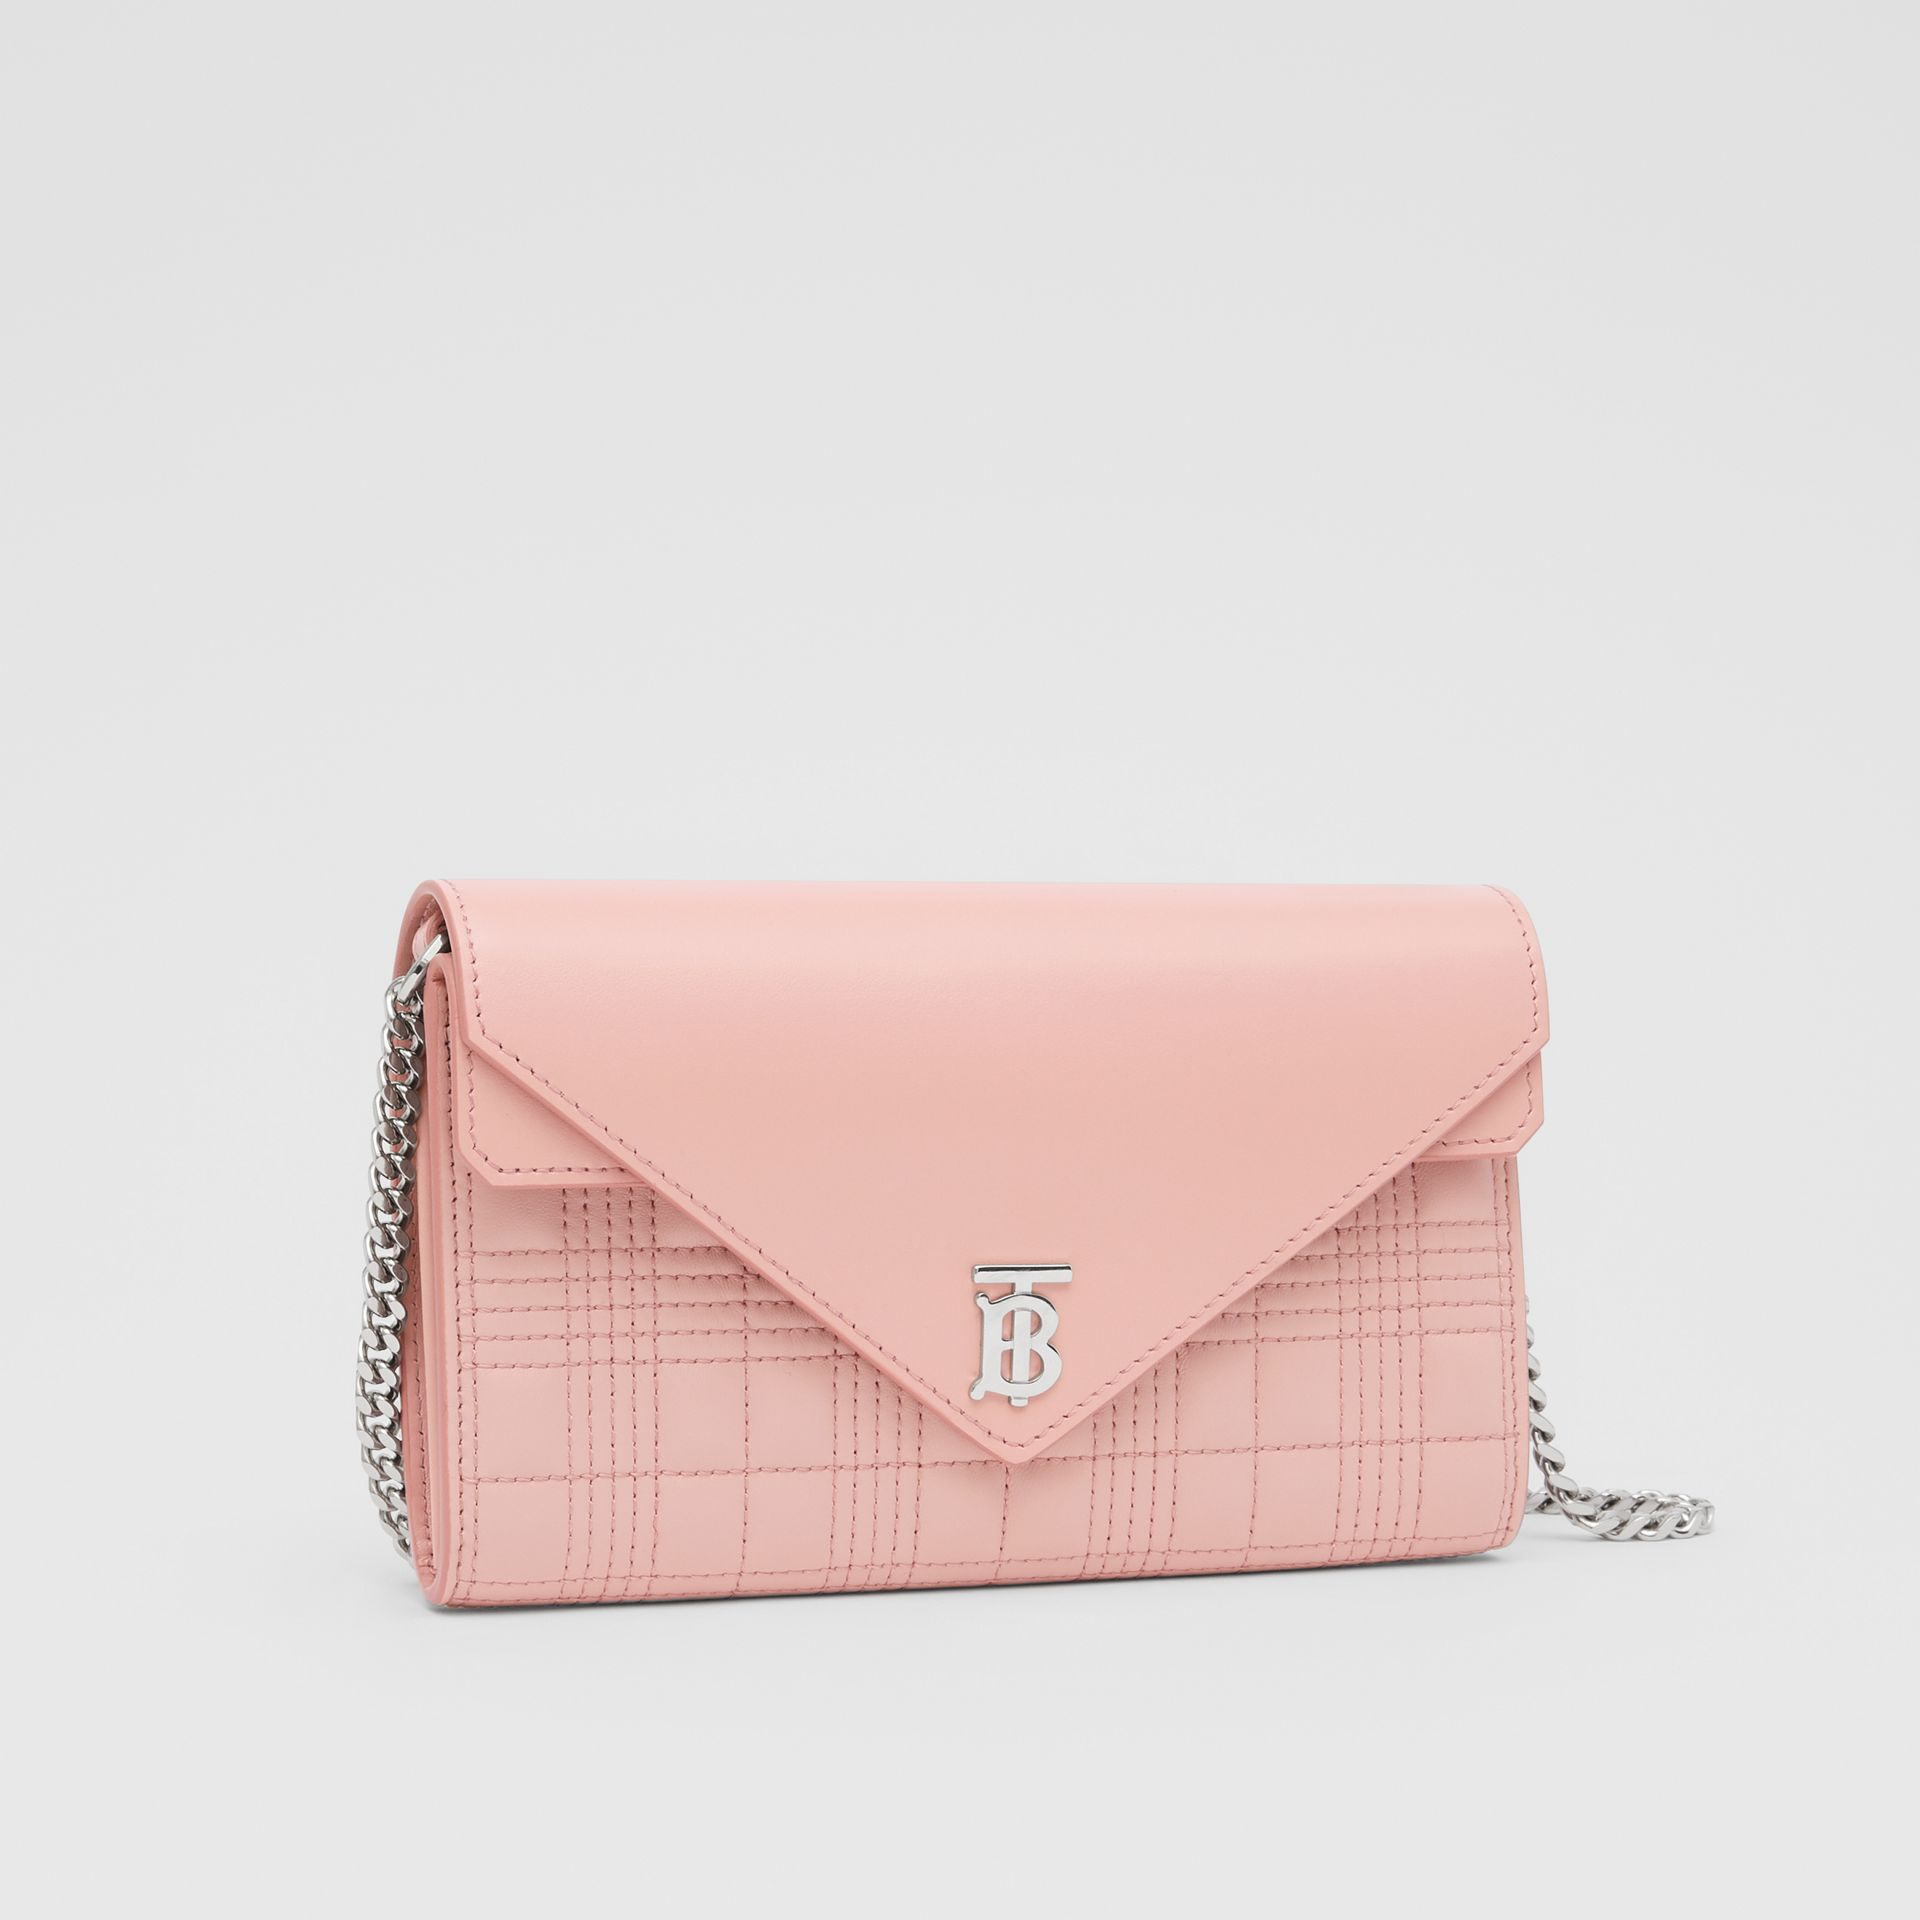 Quilted Lambskin Wallet with Detachable Chain Strap in Blush Pink - Women | Burberry - gallery image 6